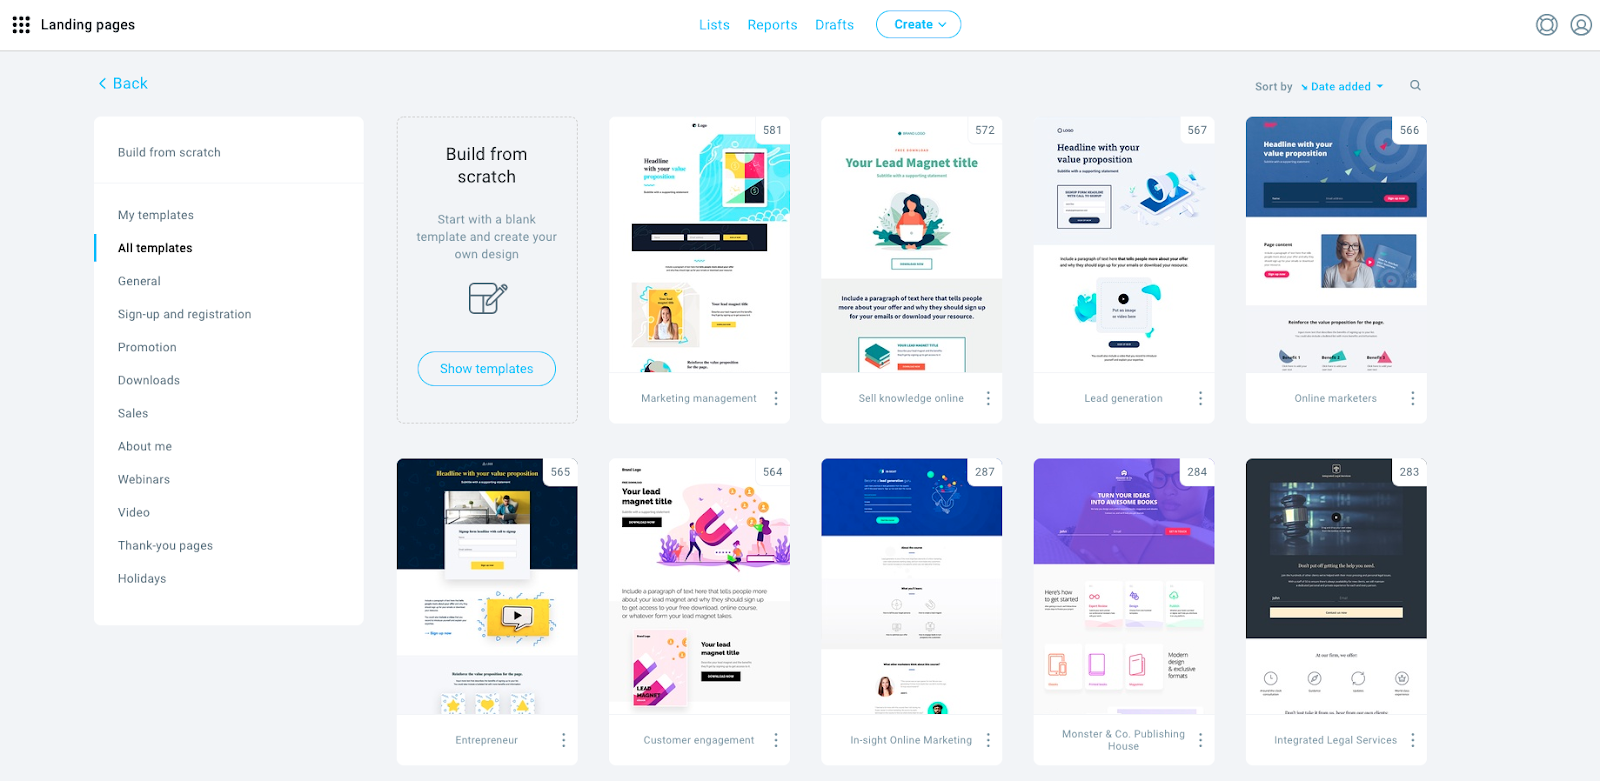 Examples of landing page templates inside the GetResponse Landing Page builder.